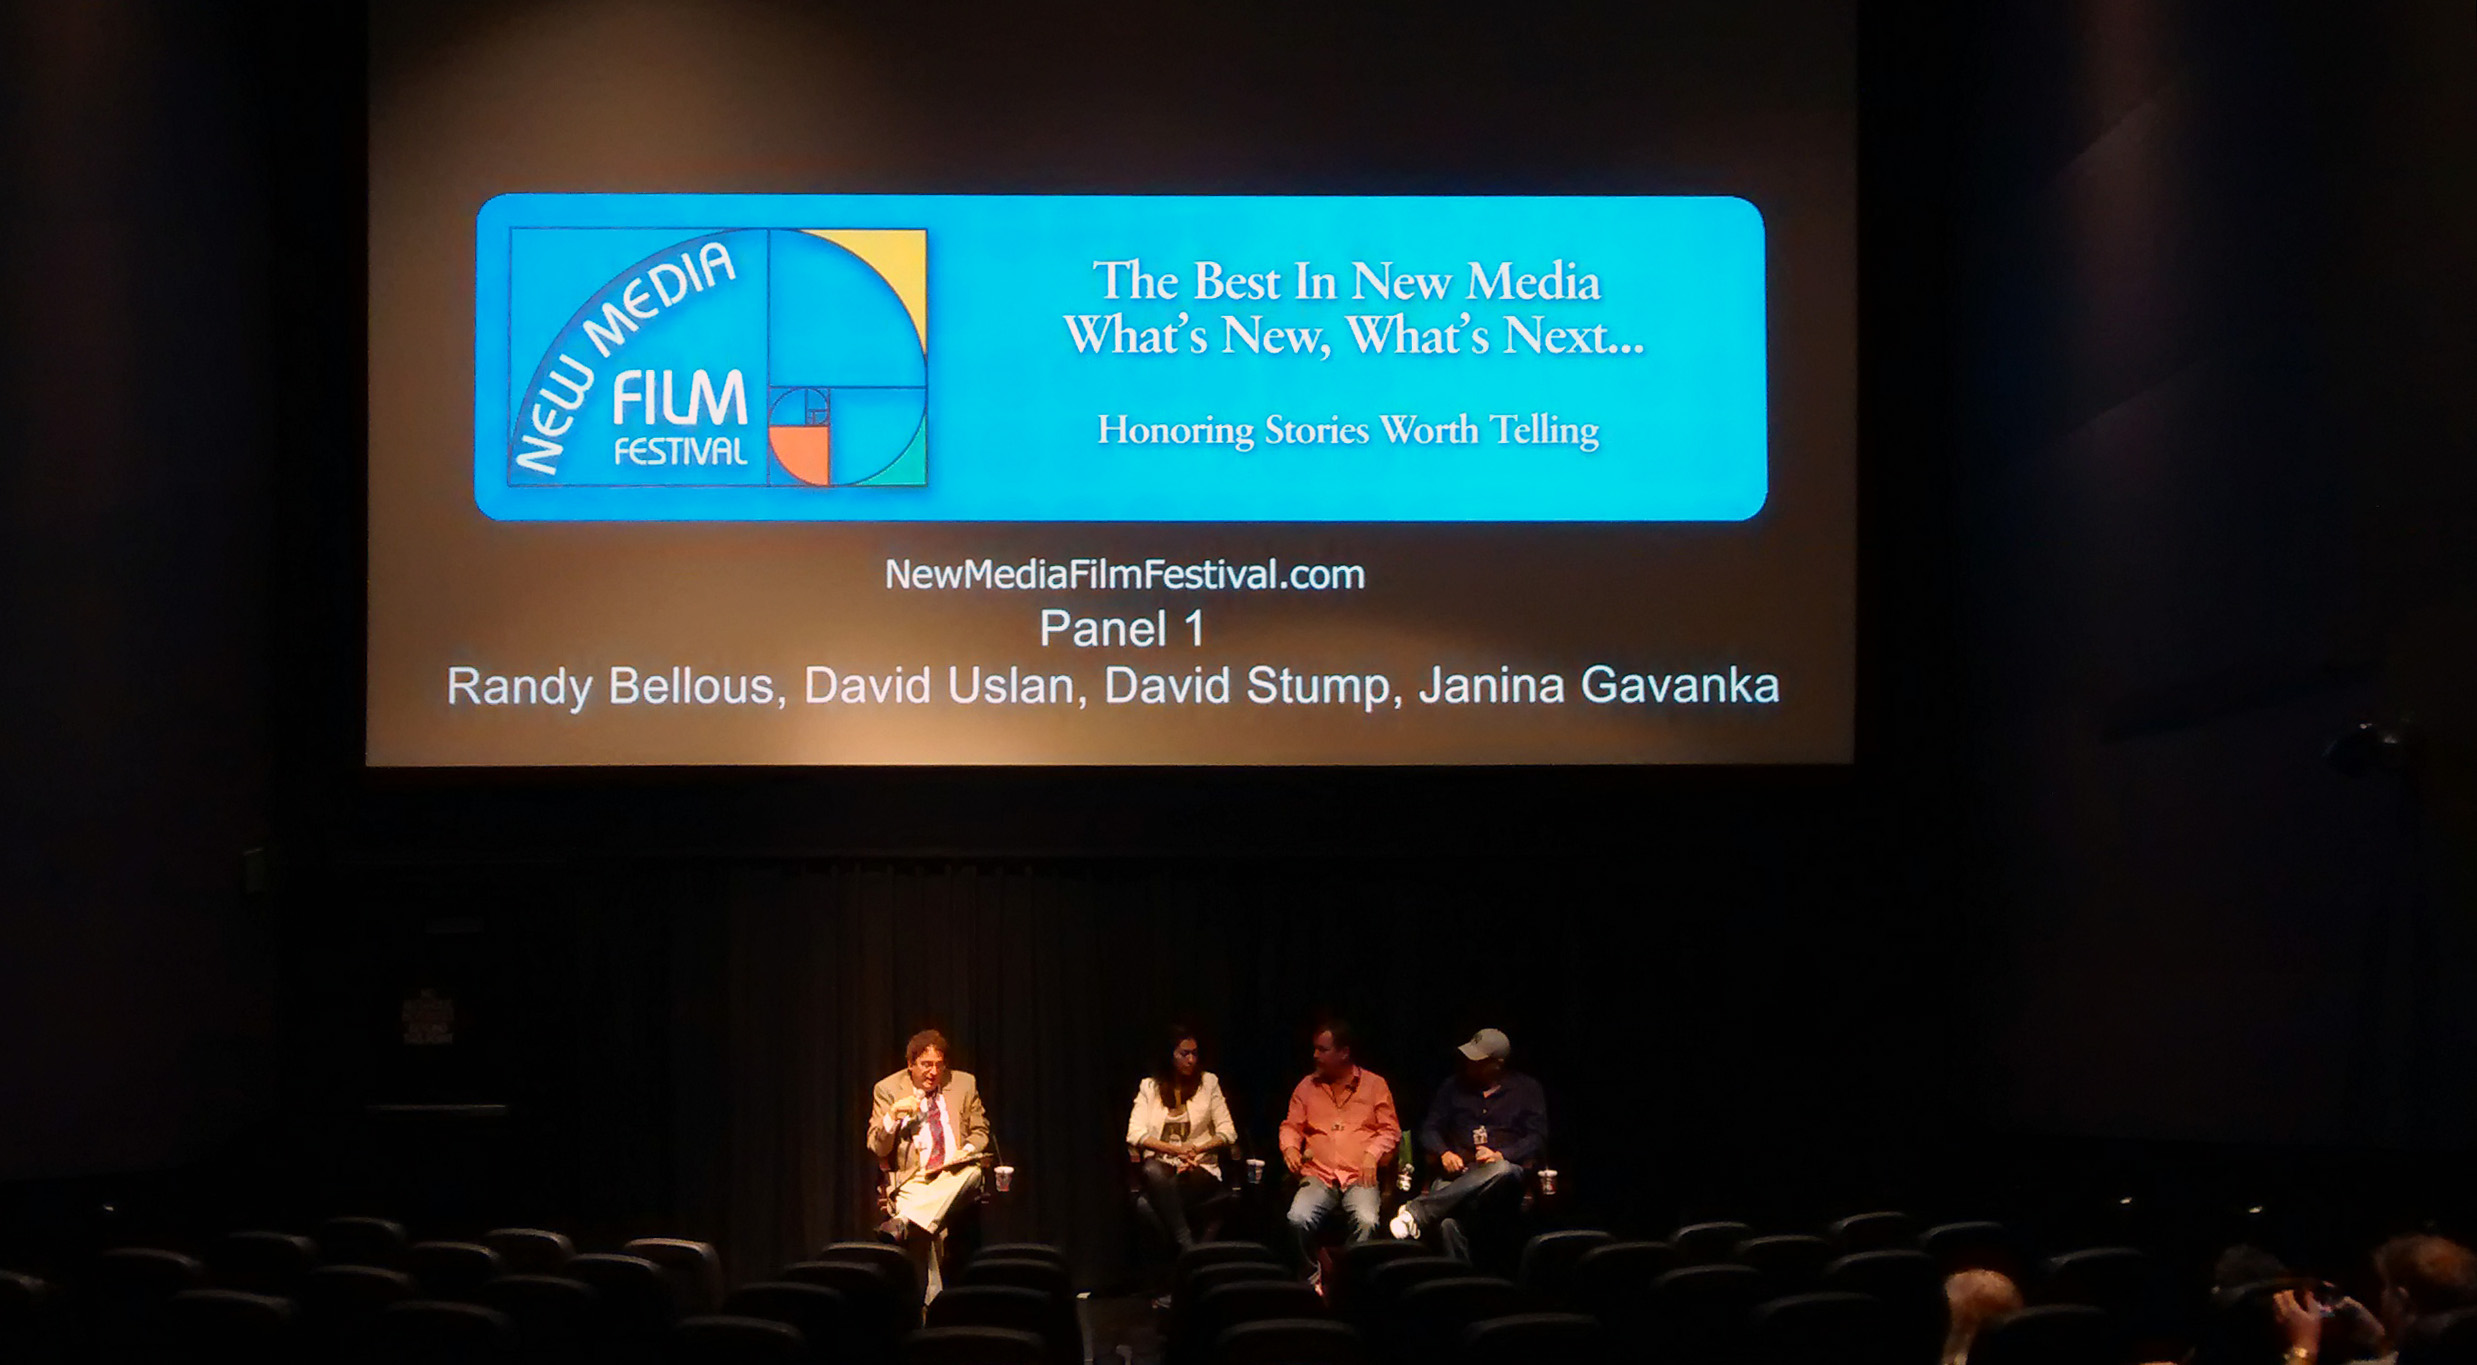 MACHINIMA and the New Media Film Festival 2014